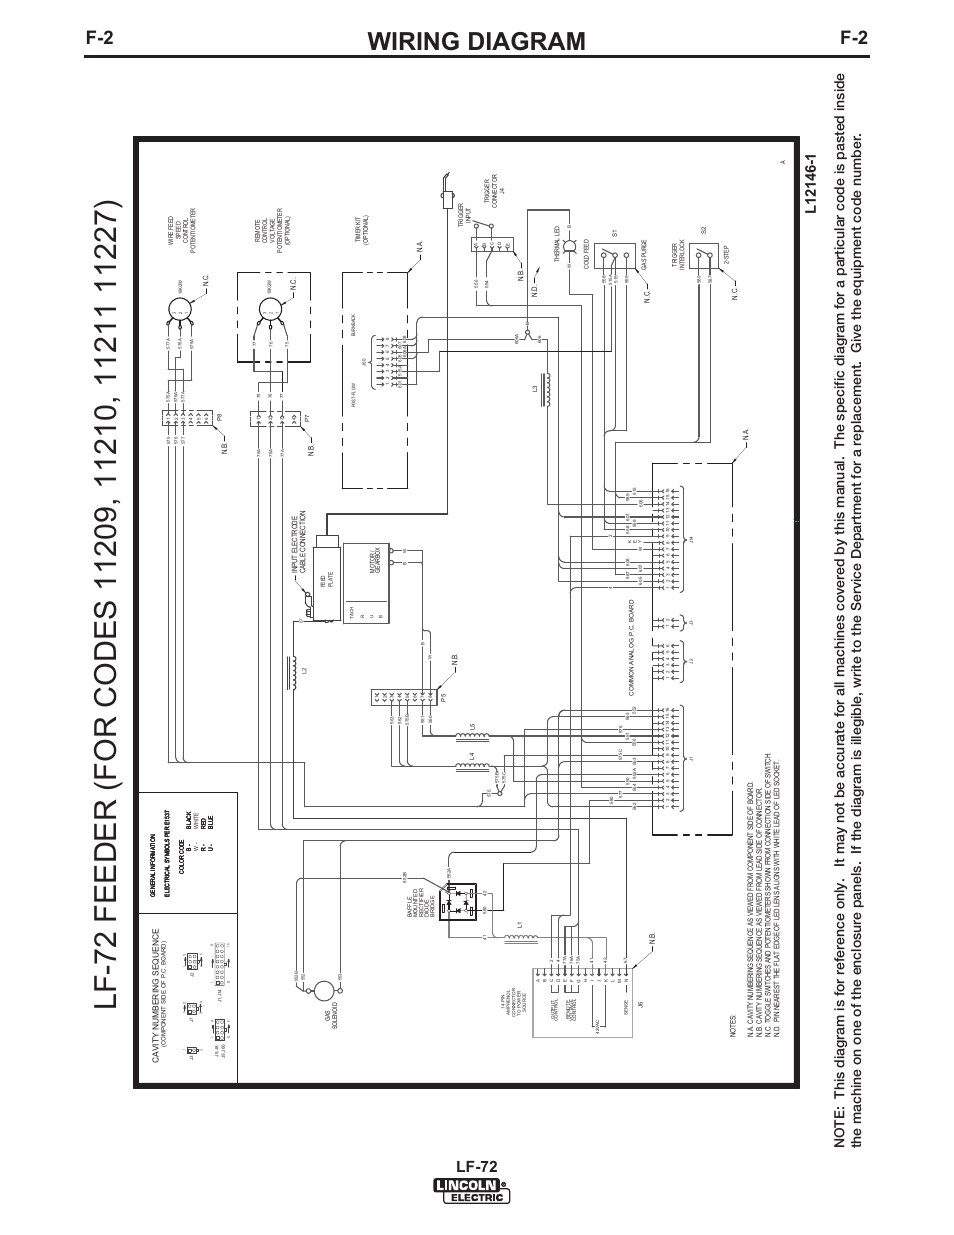 hight resolution of wiring diagram lf 72 lincoln electric im847 lf 72 wire feeder lincoln electric wire diagram